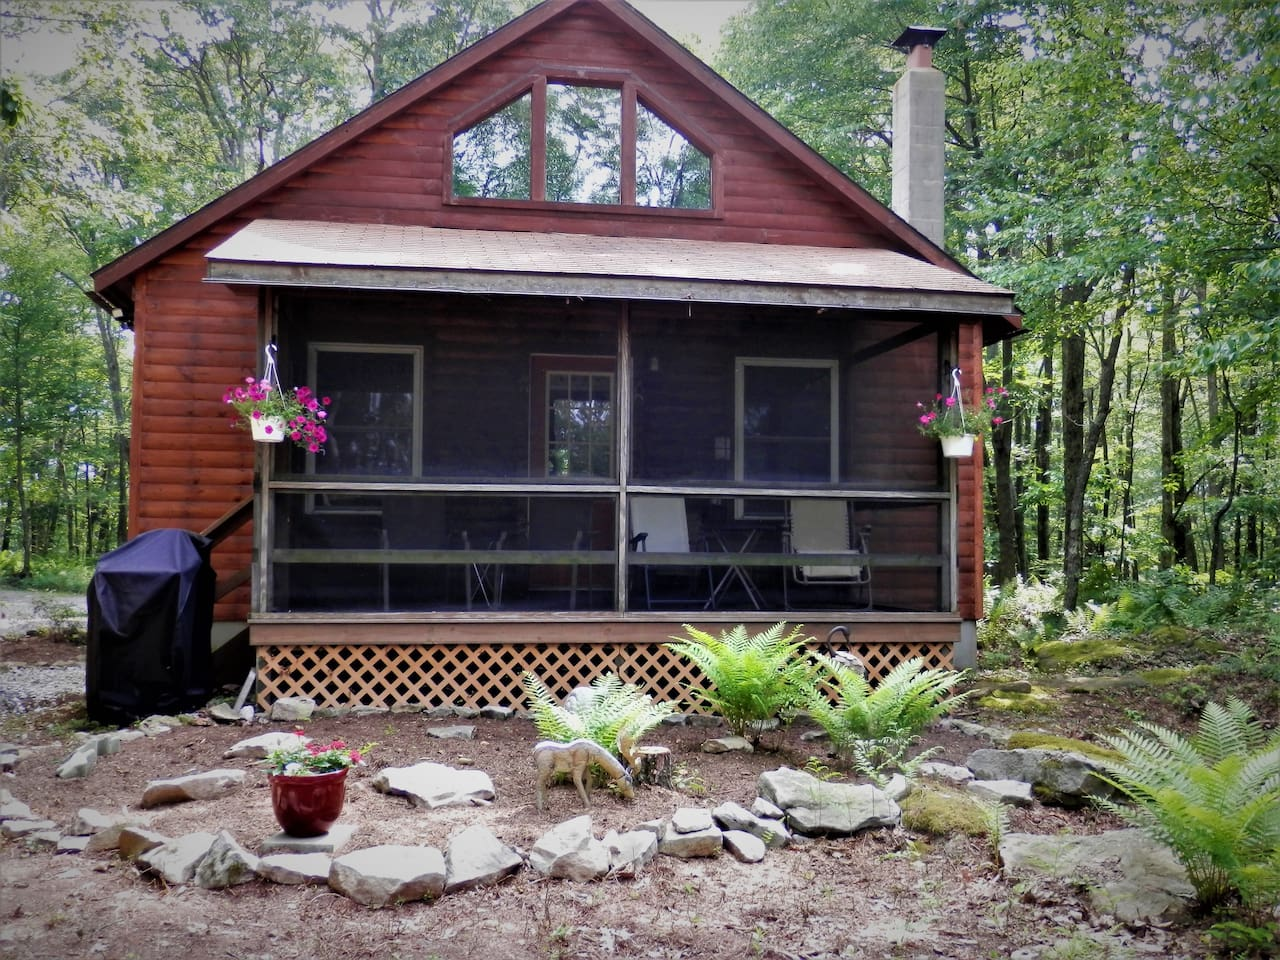 View of back of cabin with screened porch for relaxing.